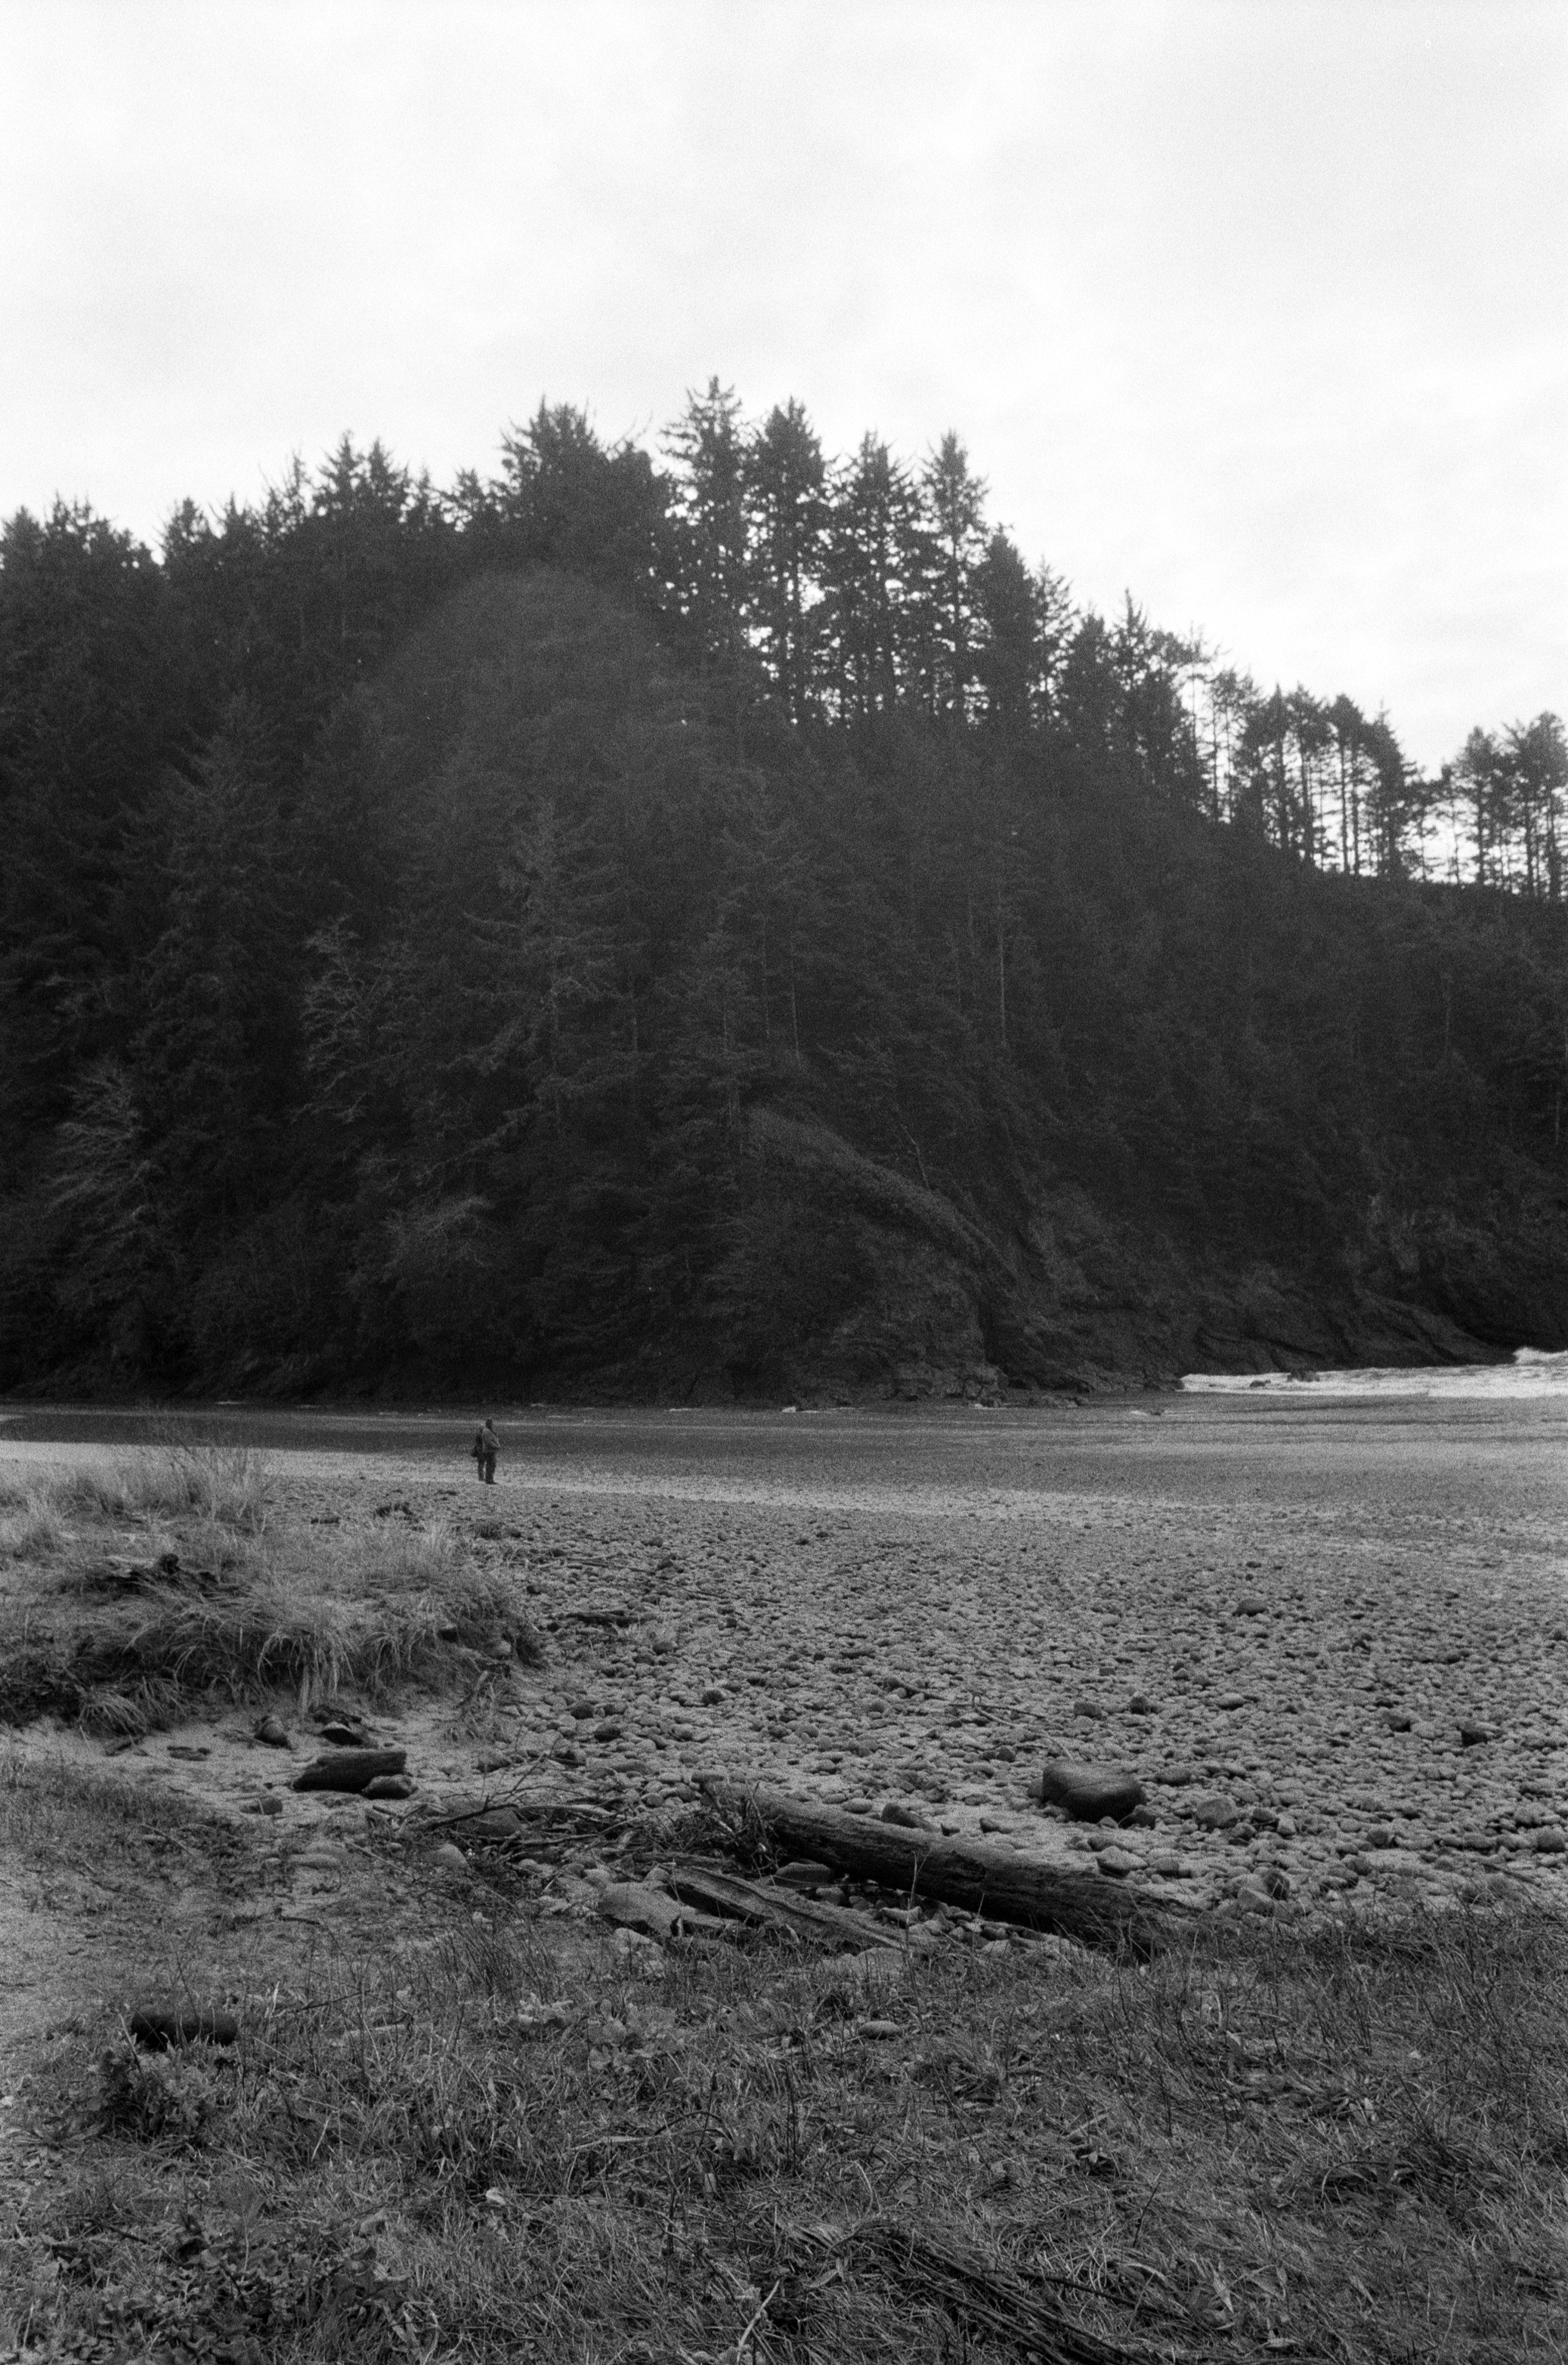 Ilford_Roll01_PNW_2019_020.jpg